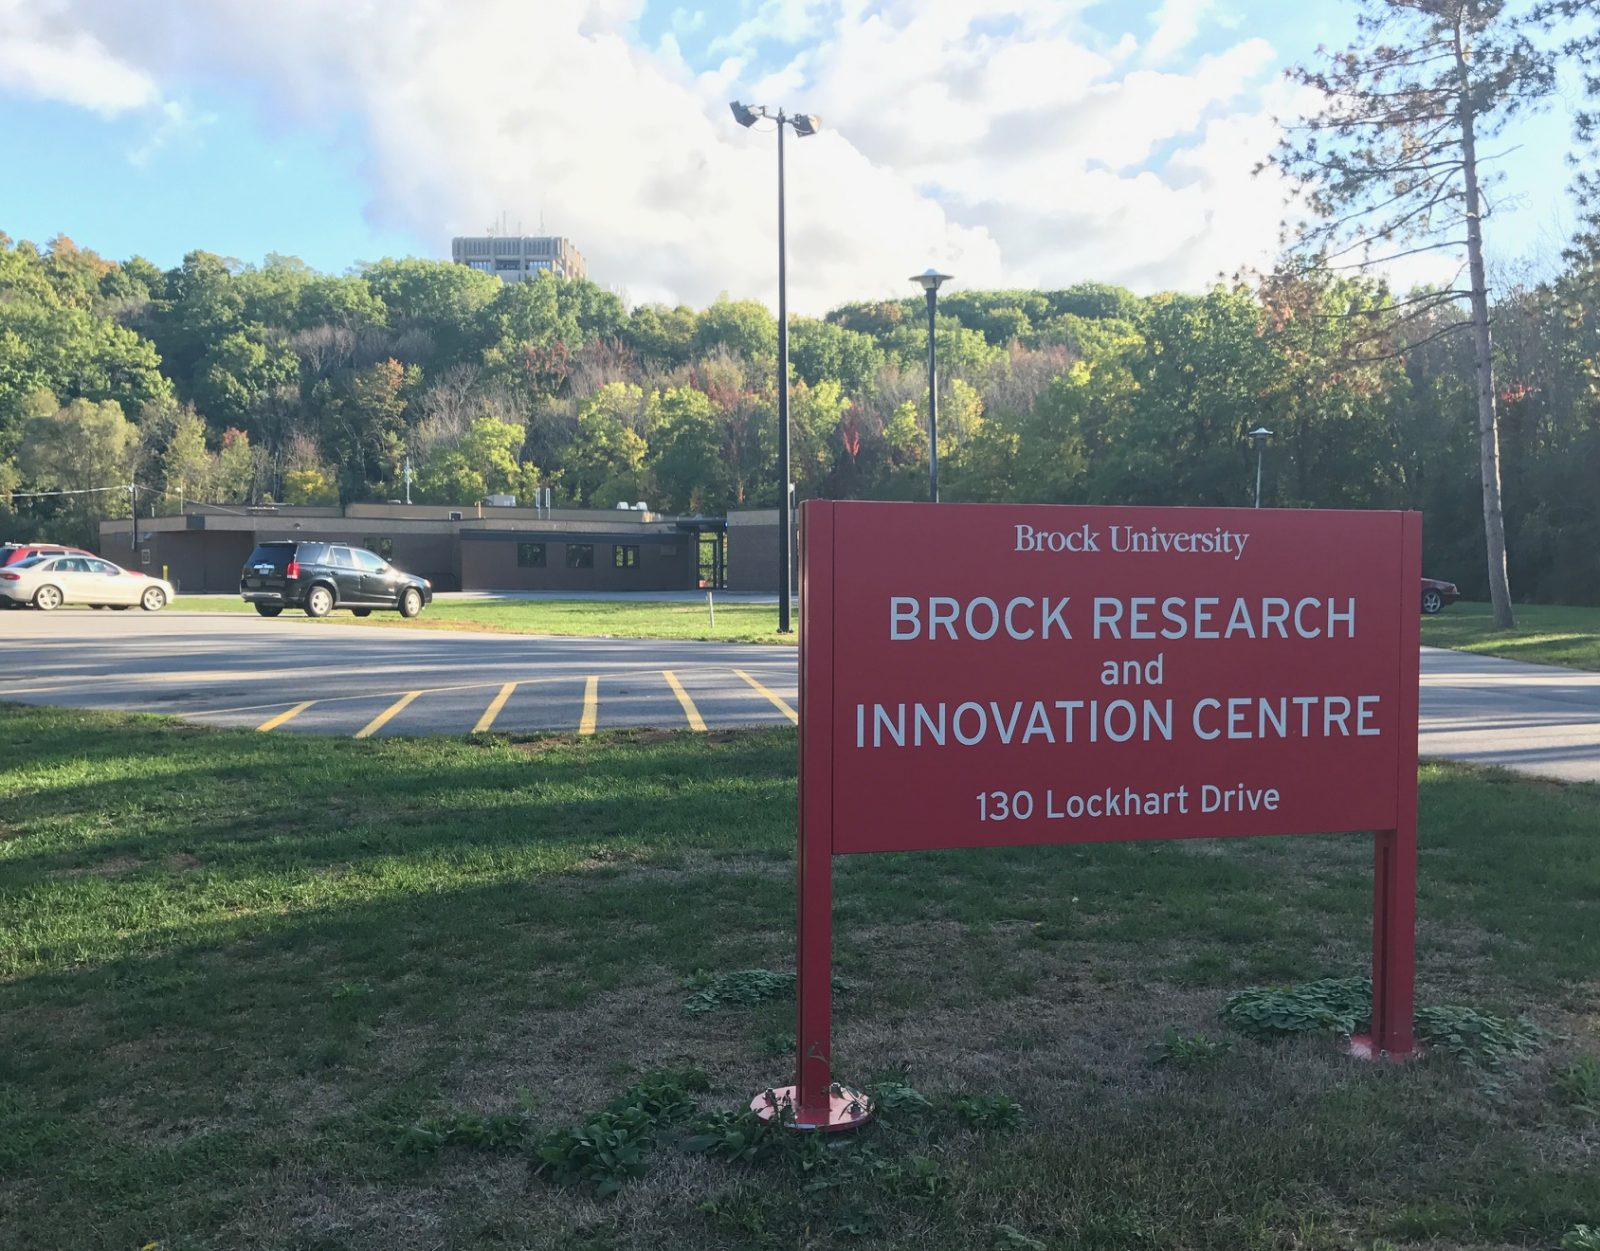 Brock Research and Innovation Centre